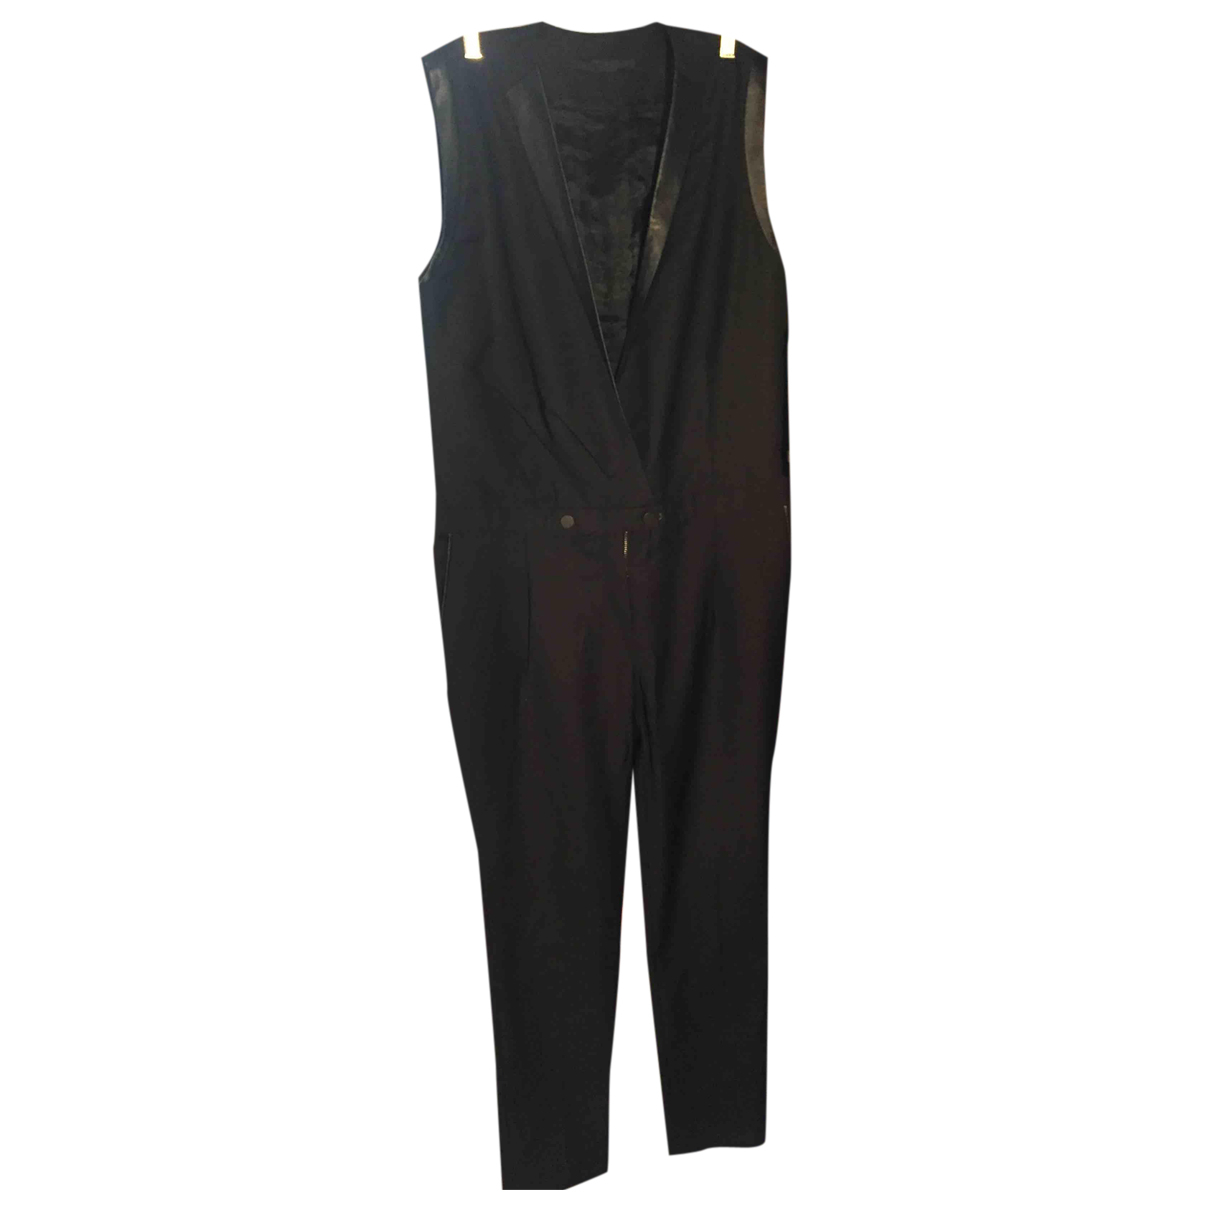 Karl Lagerfeld N Black jumpsuit for Women 40 FR